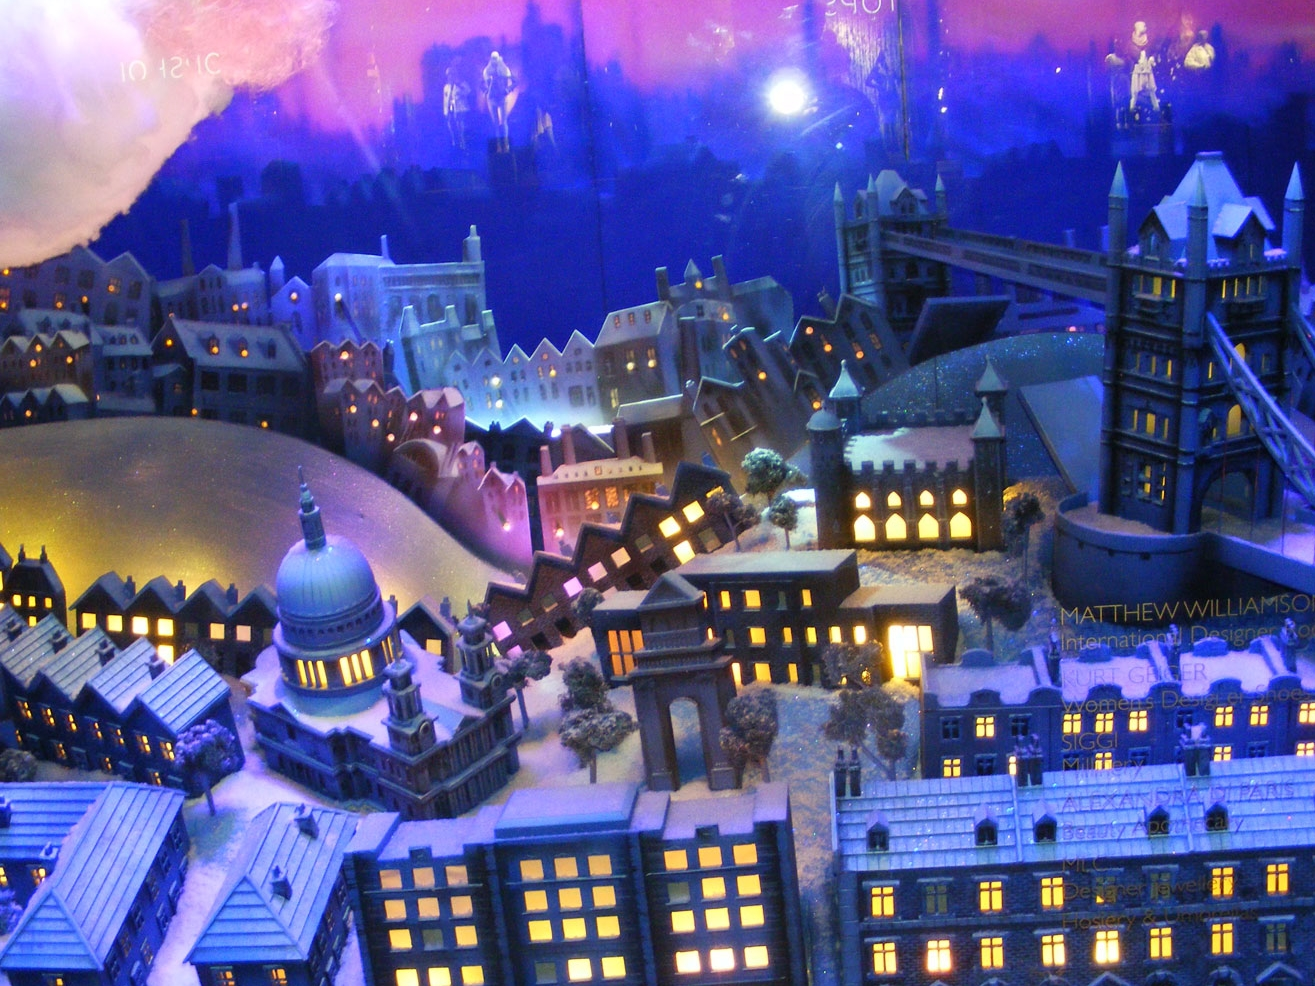 PETER PAN WINDOWS - HARRODS  October 2010